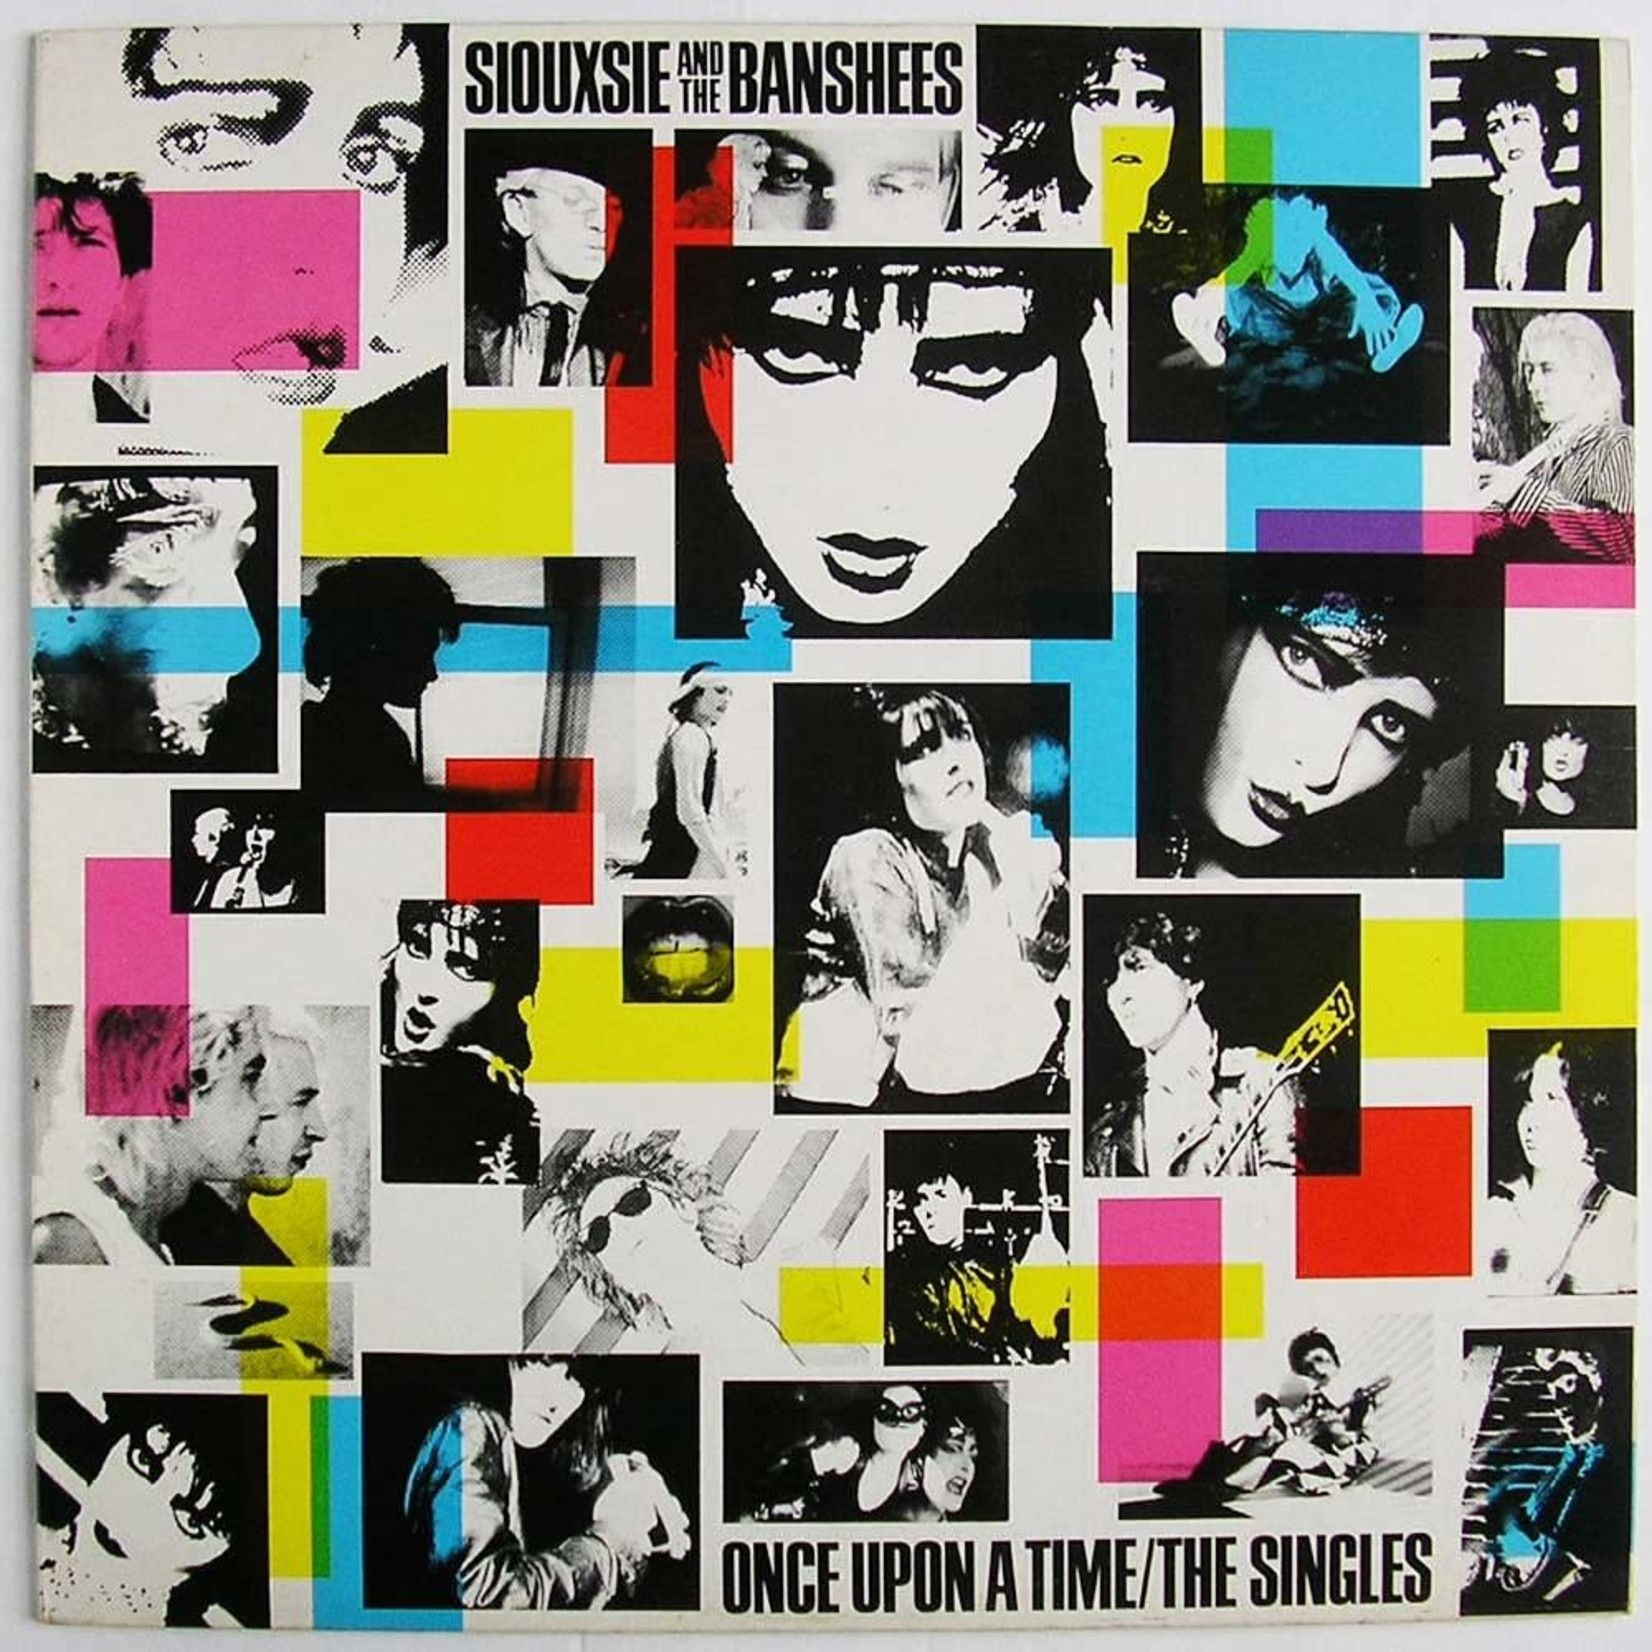 [Vintage] Siouxsie & the Banshees: Once Upon a Time/The Singles